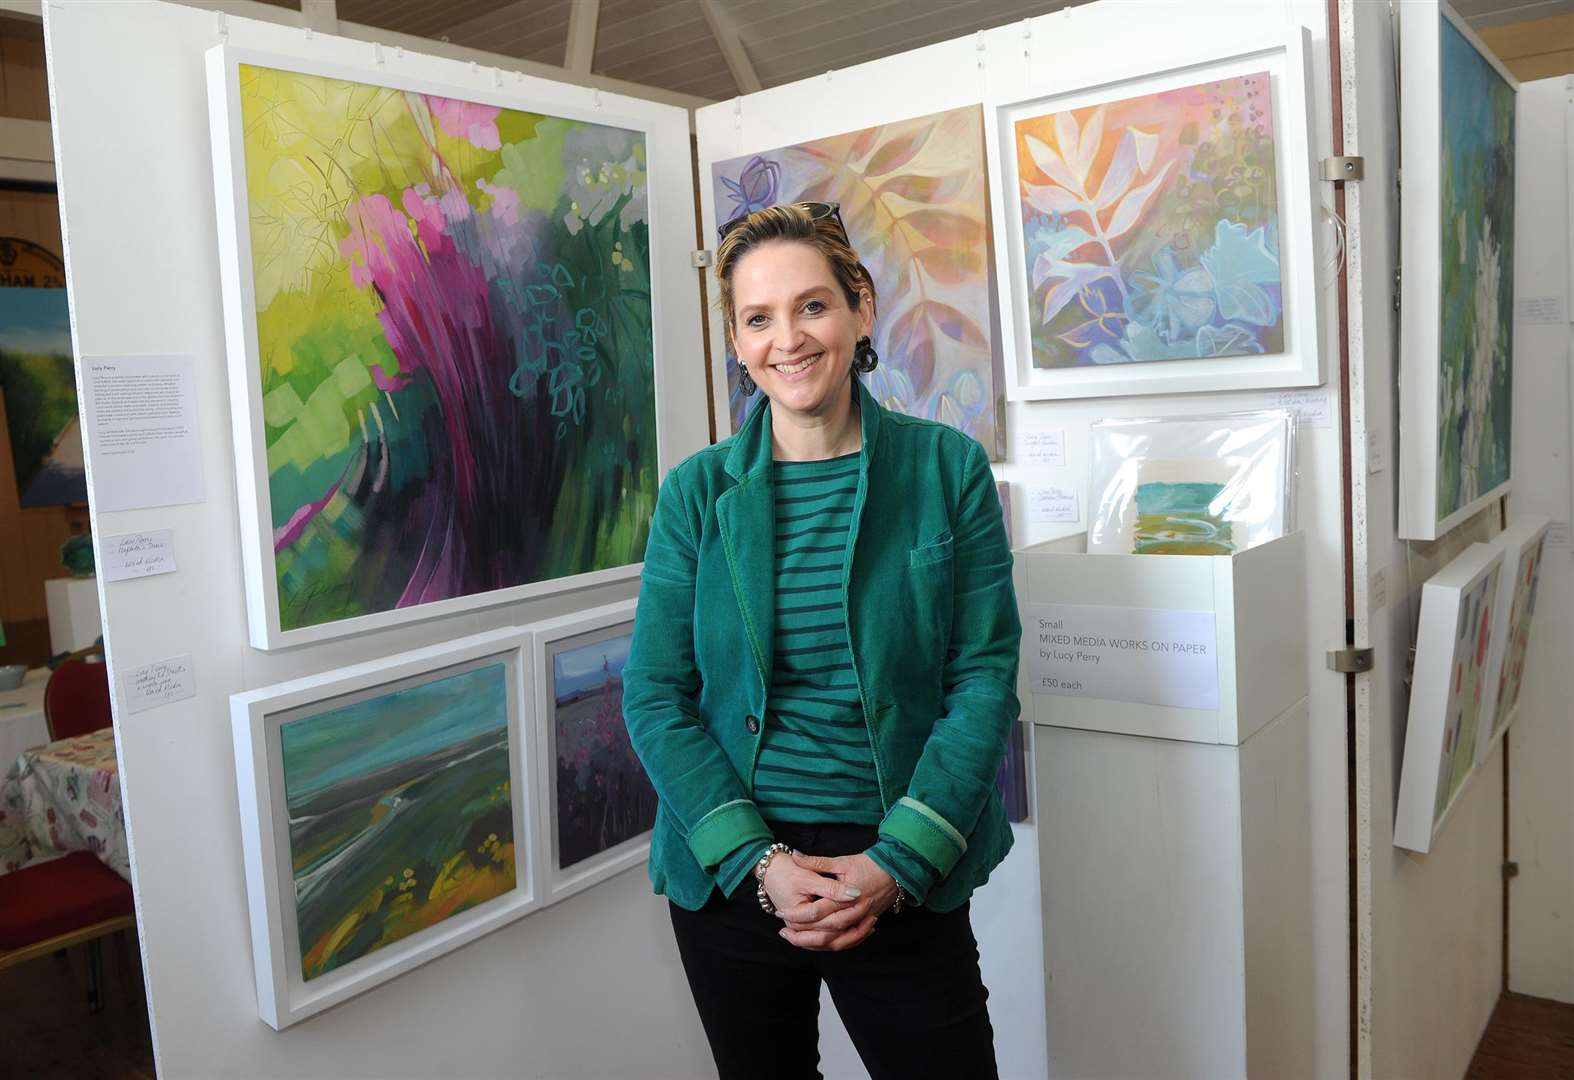 PICTURES: Thorpe Morieux exhibition celebrates art and nature